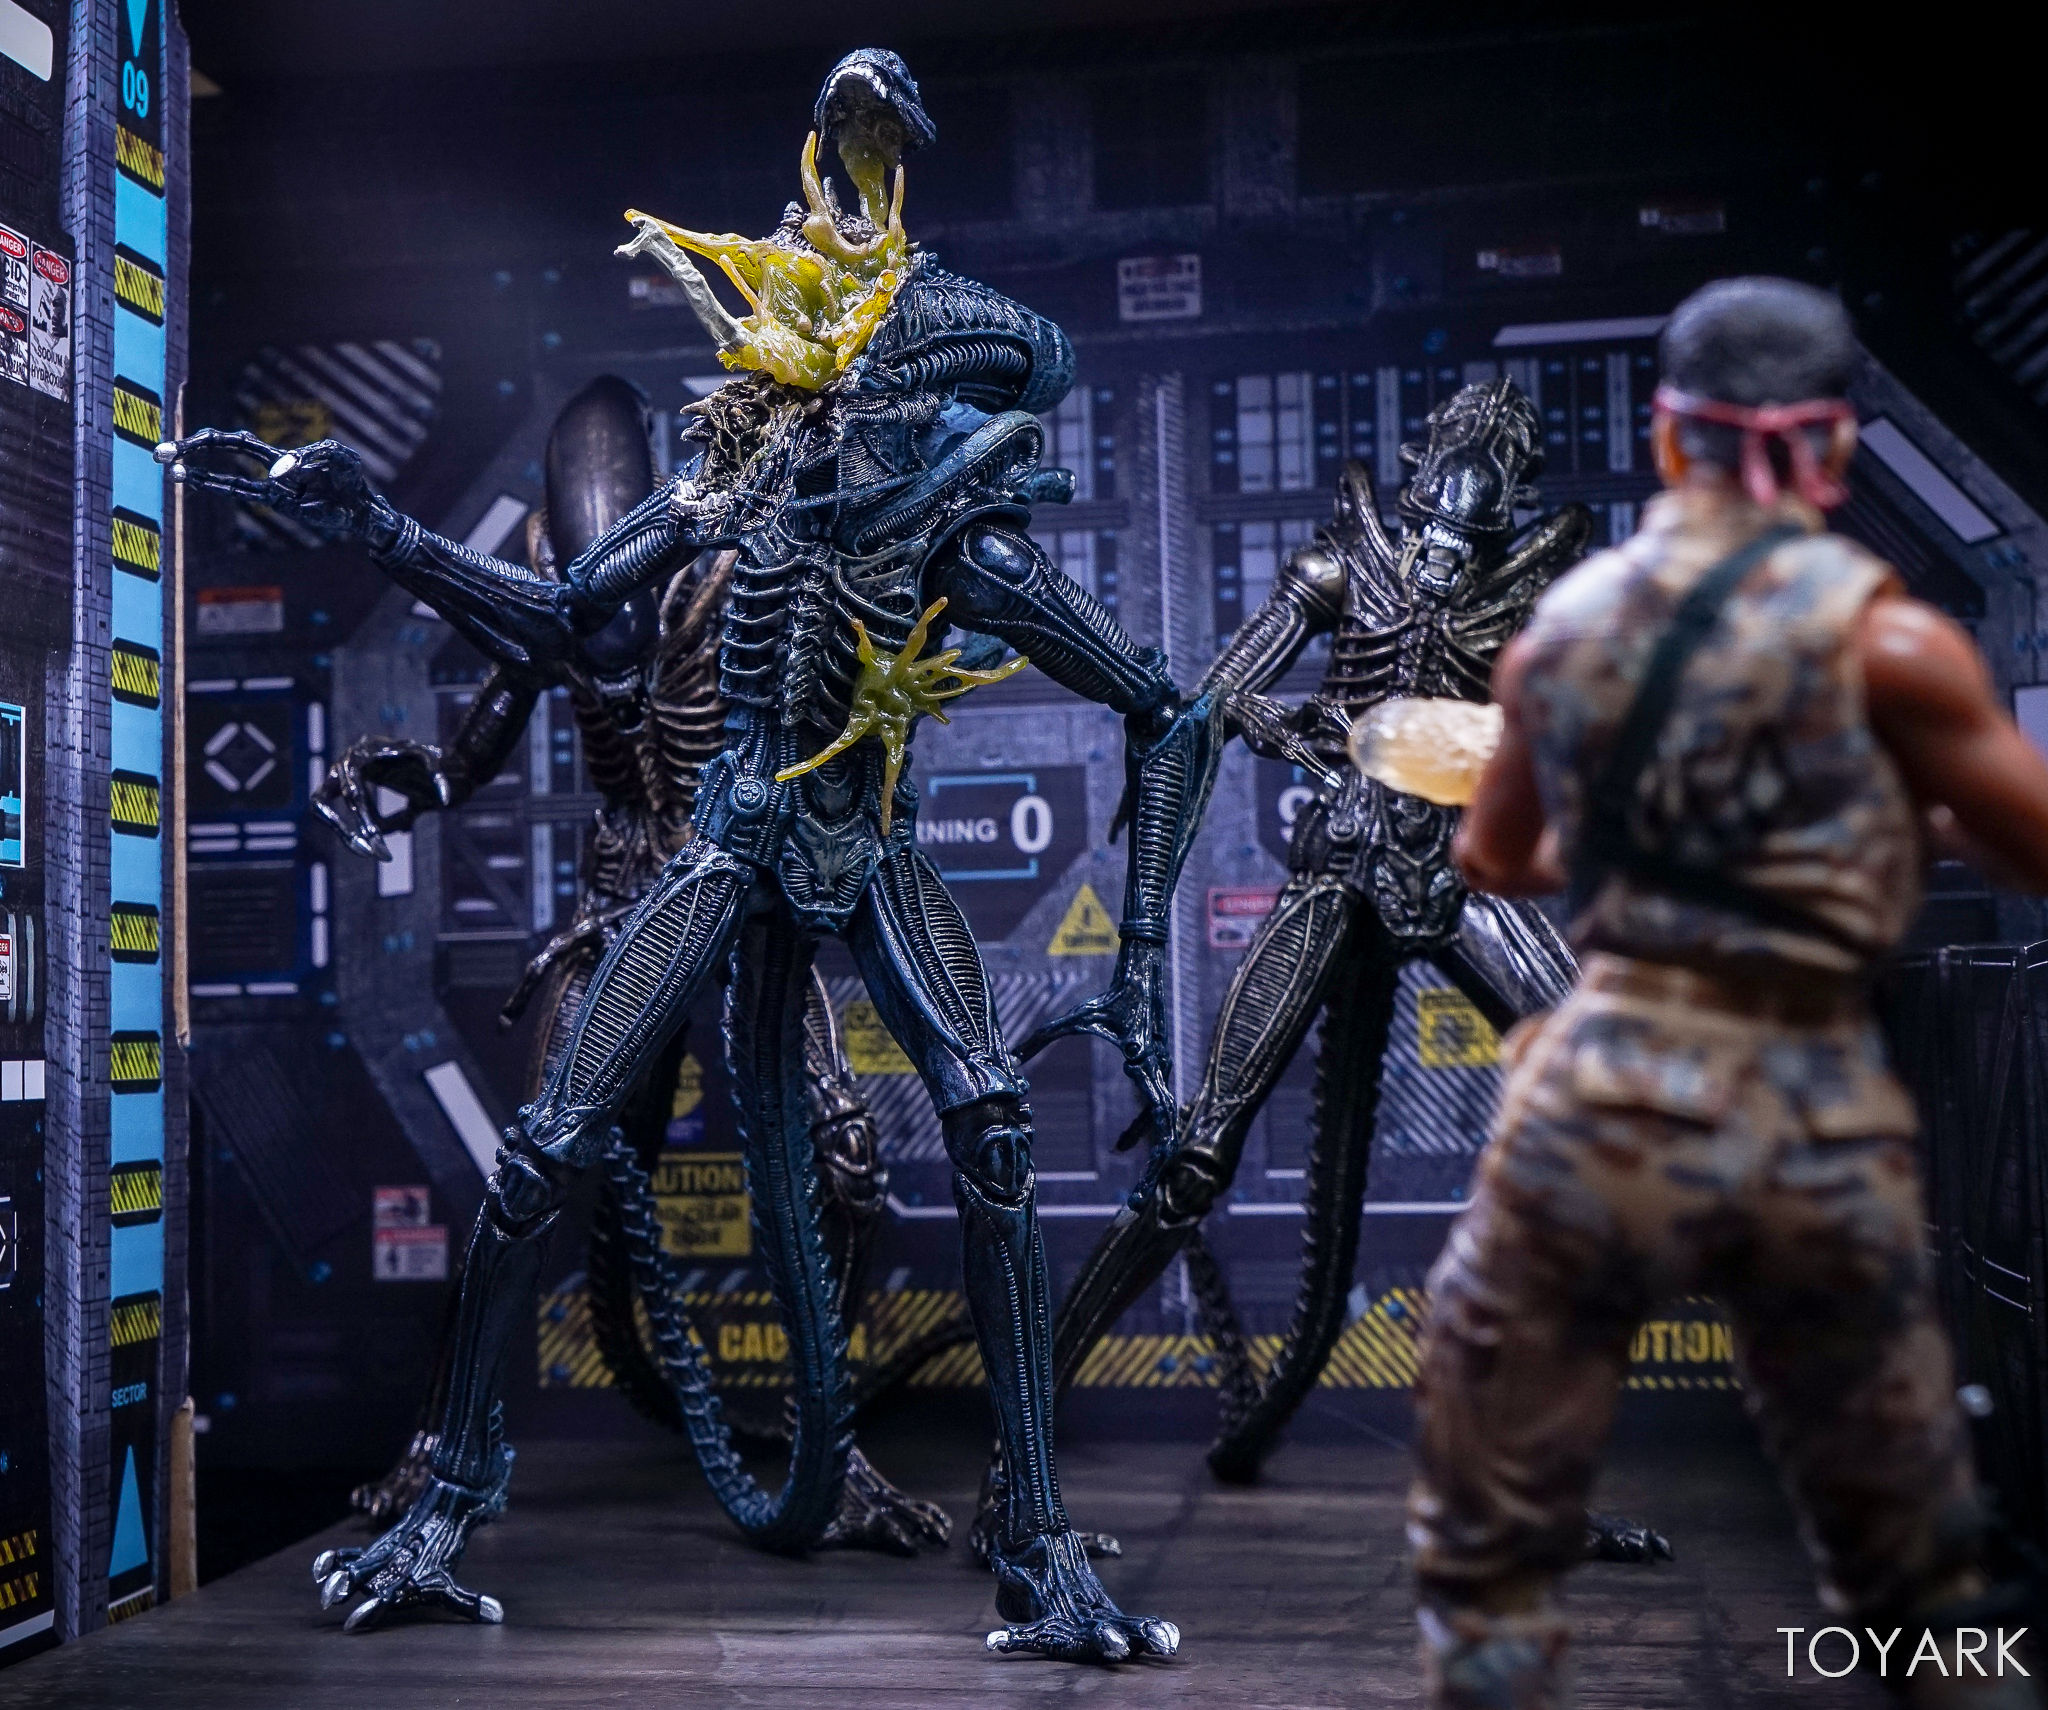 http://news.toyark.com/wp-content/uploads/sites/4/2017/10/NECA-Aliens-Series-12-Figures-031.jpg